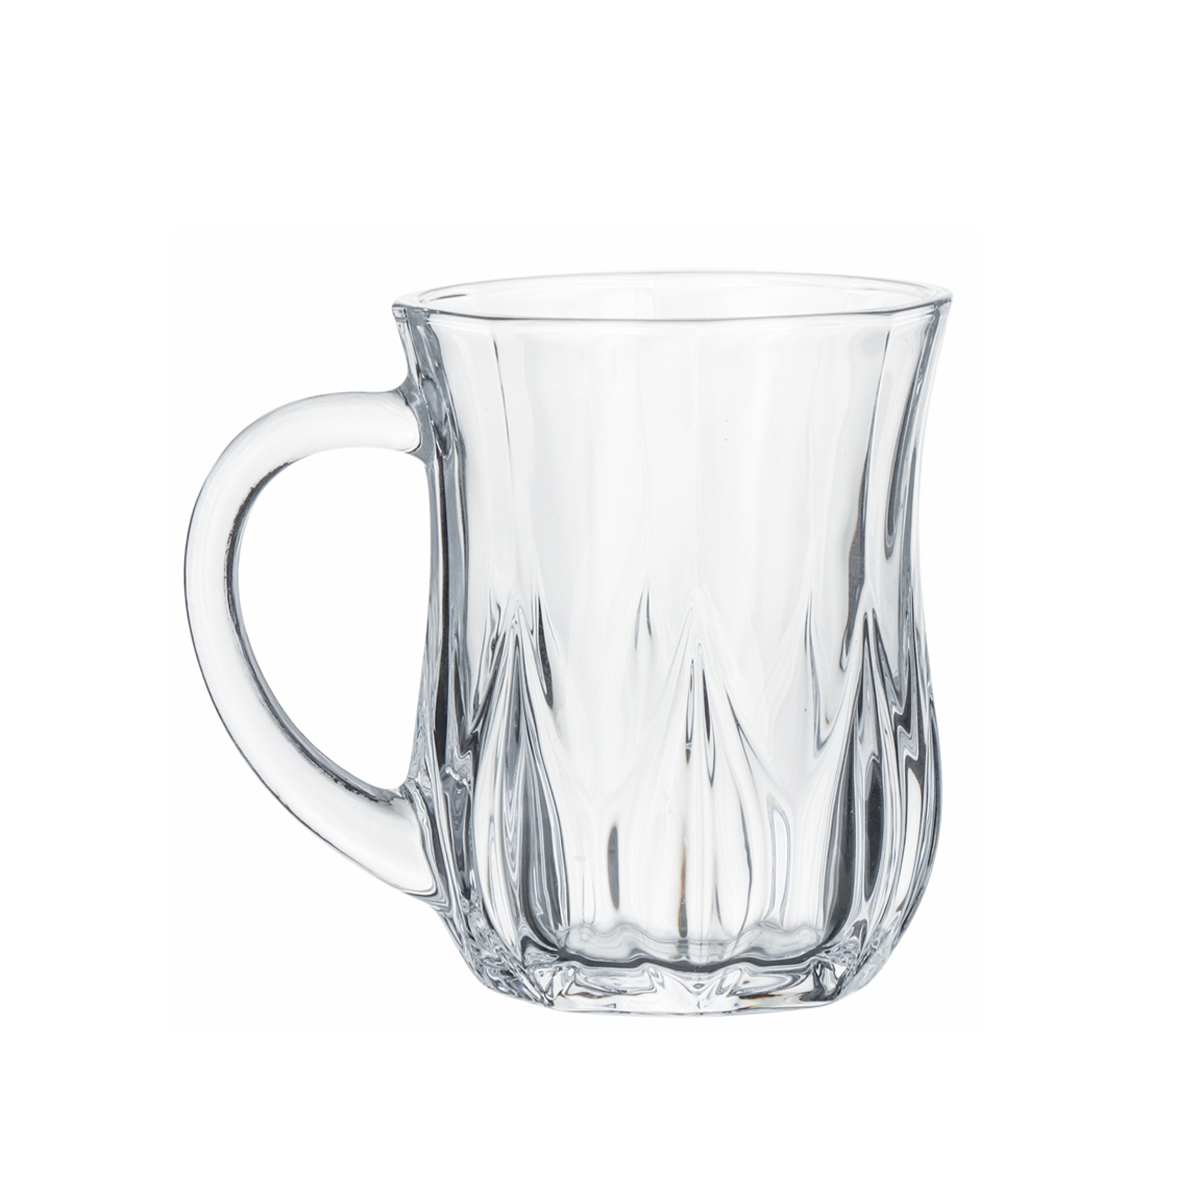 Femora Glass Aqua Tea Mug Coffee Mug - Set of 4-145 ML